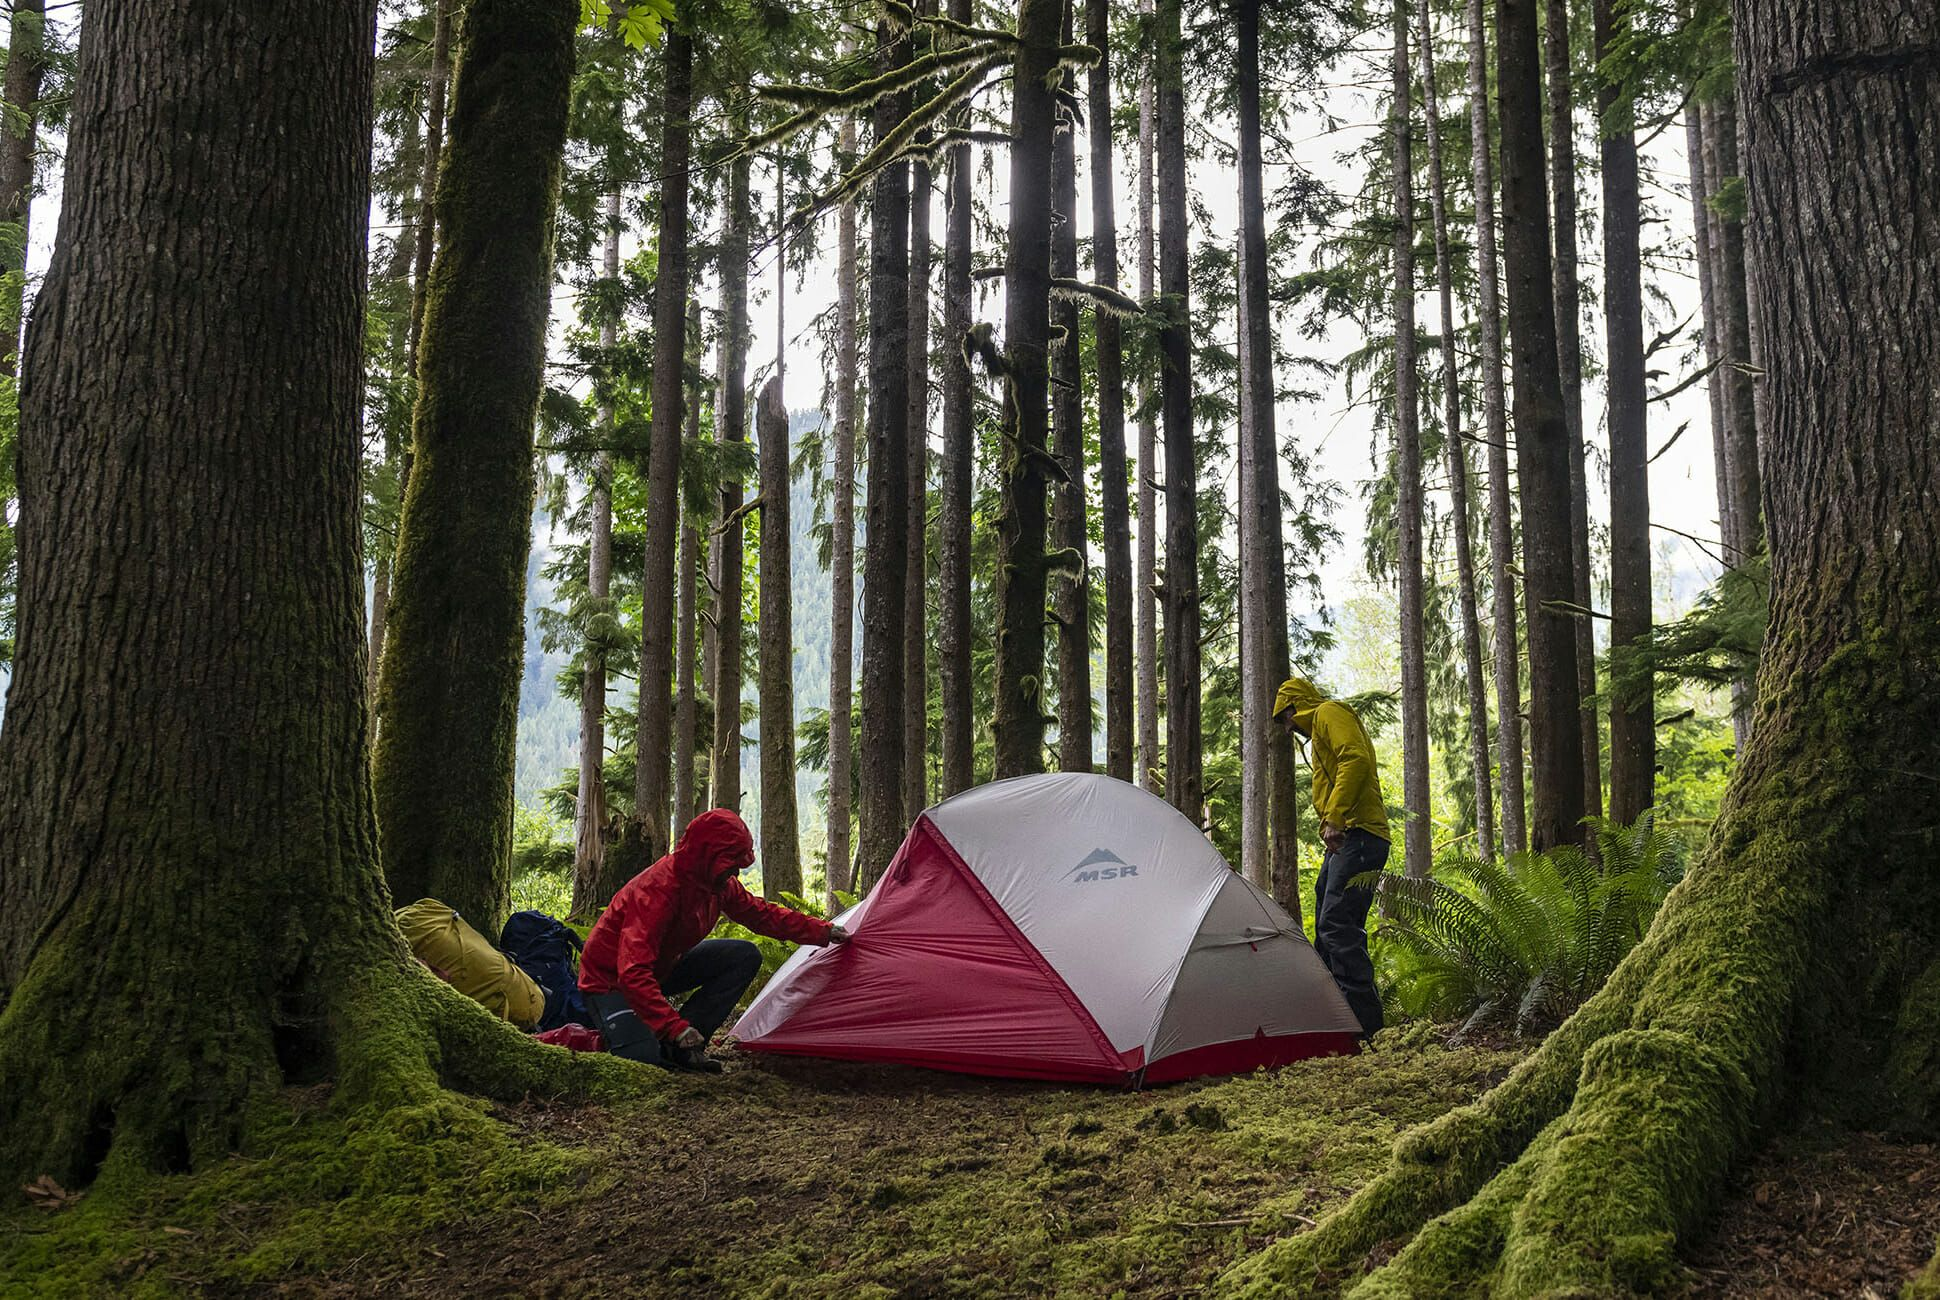 Best Backpacking Tents 2020.The 6 Best Backpacking Tents Of 2019 Gear Patrol